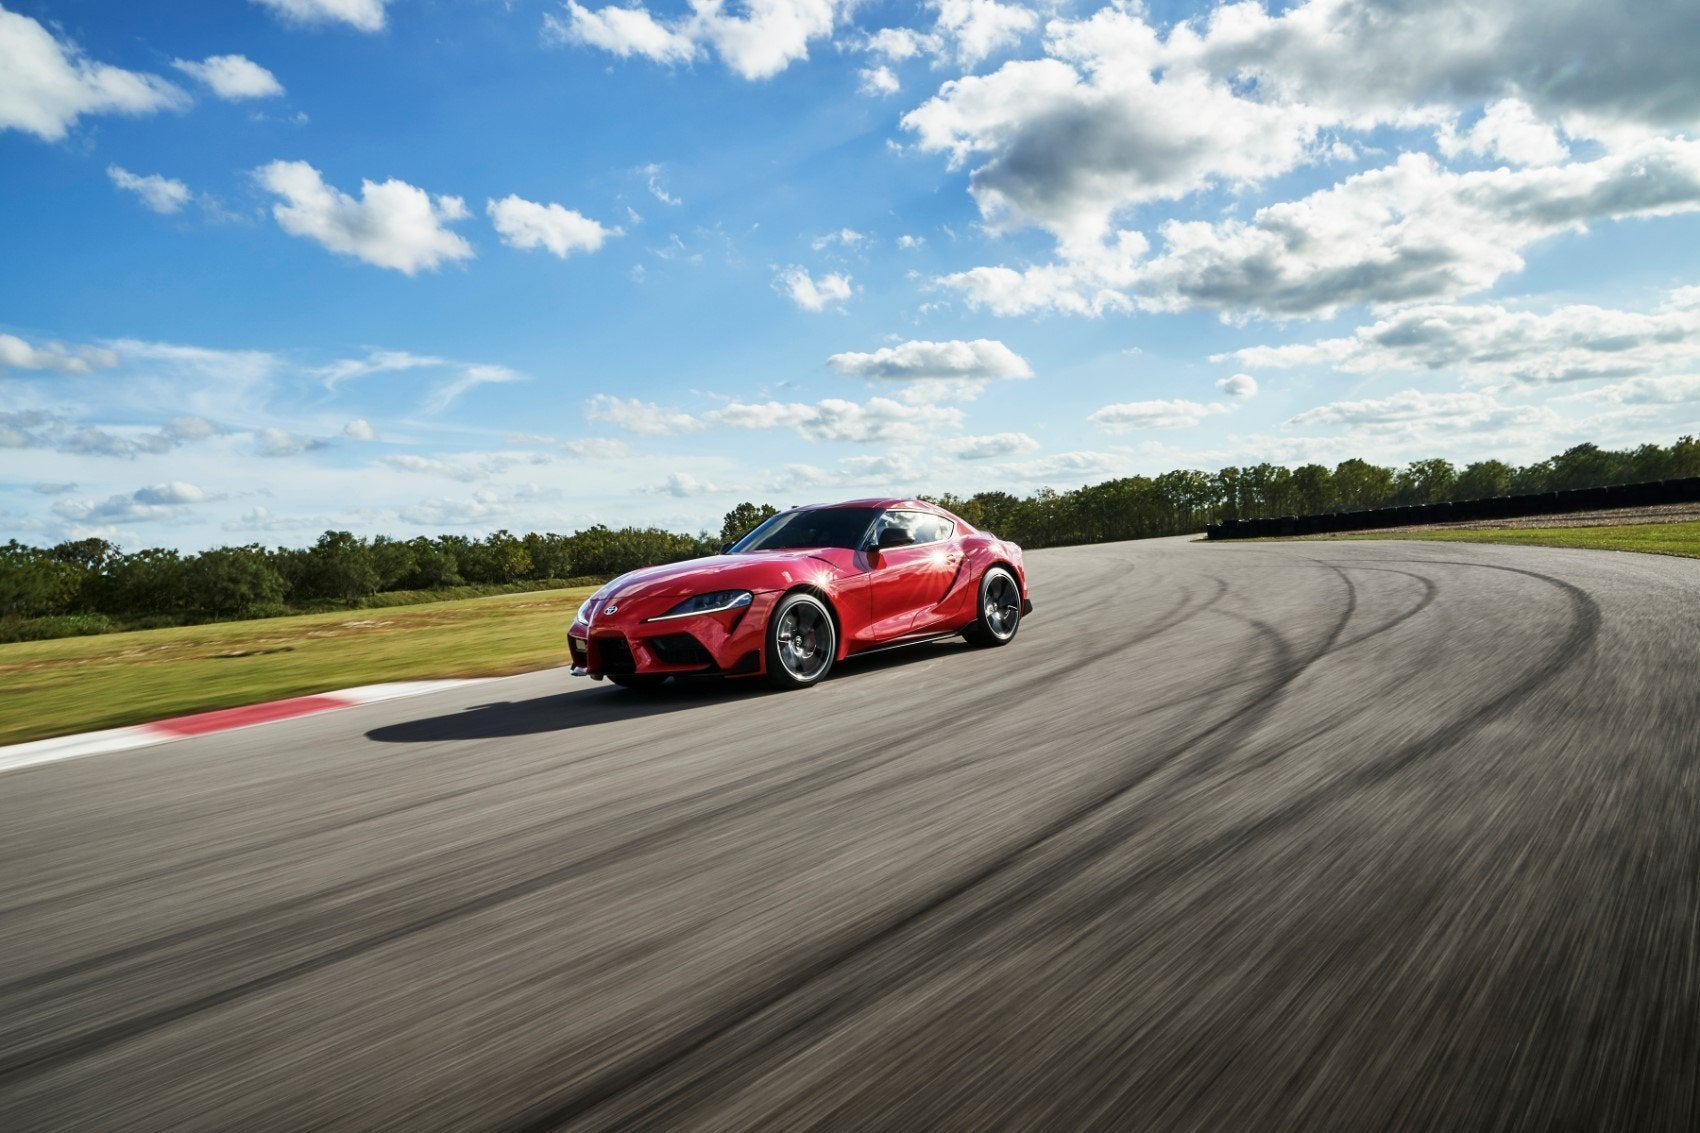 2020 Toyota GR Supra on the track.